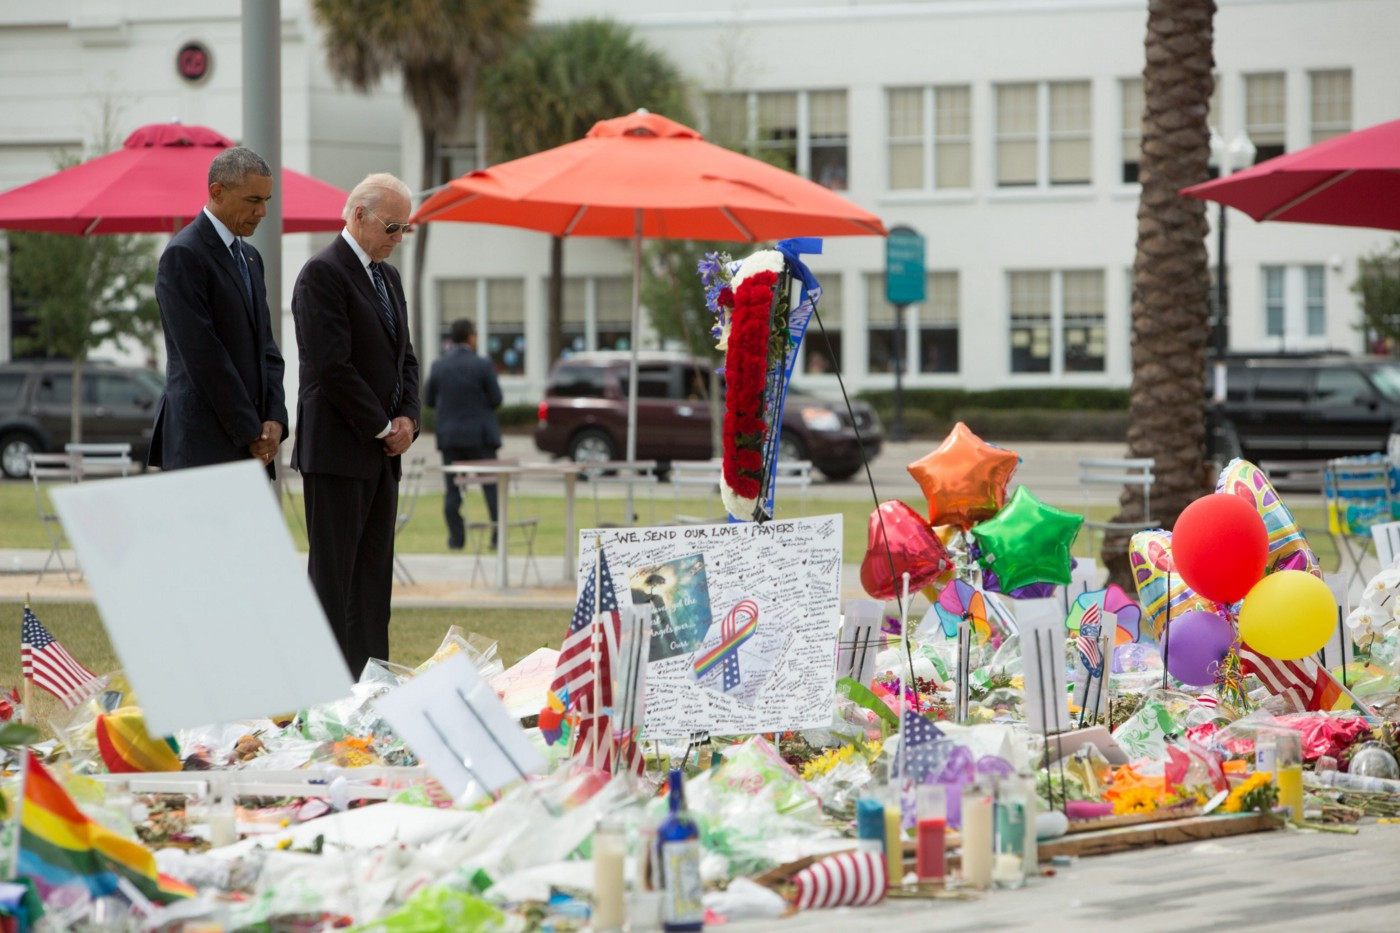 Joe Biden in aviator sunglasses and Barack Obama stand in black suits solemnly at a memorial for the Pulse Nightclub shooting there are colorful balloons, signs, flowers, and candles that people have left to pay their respects.